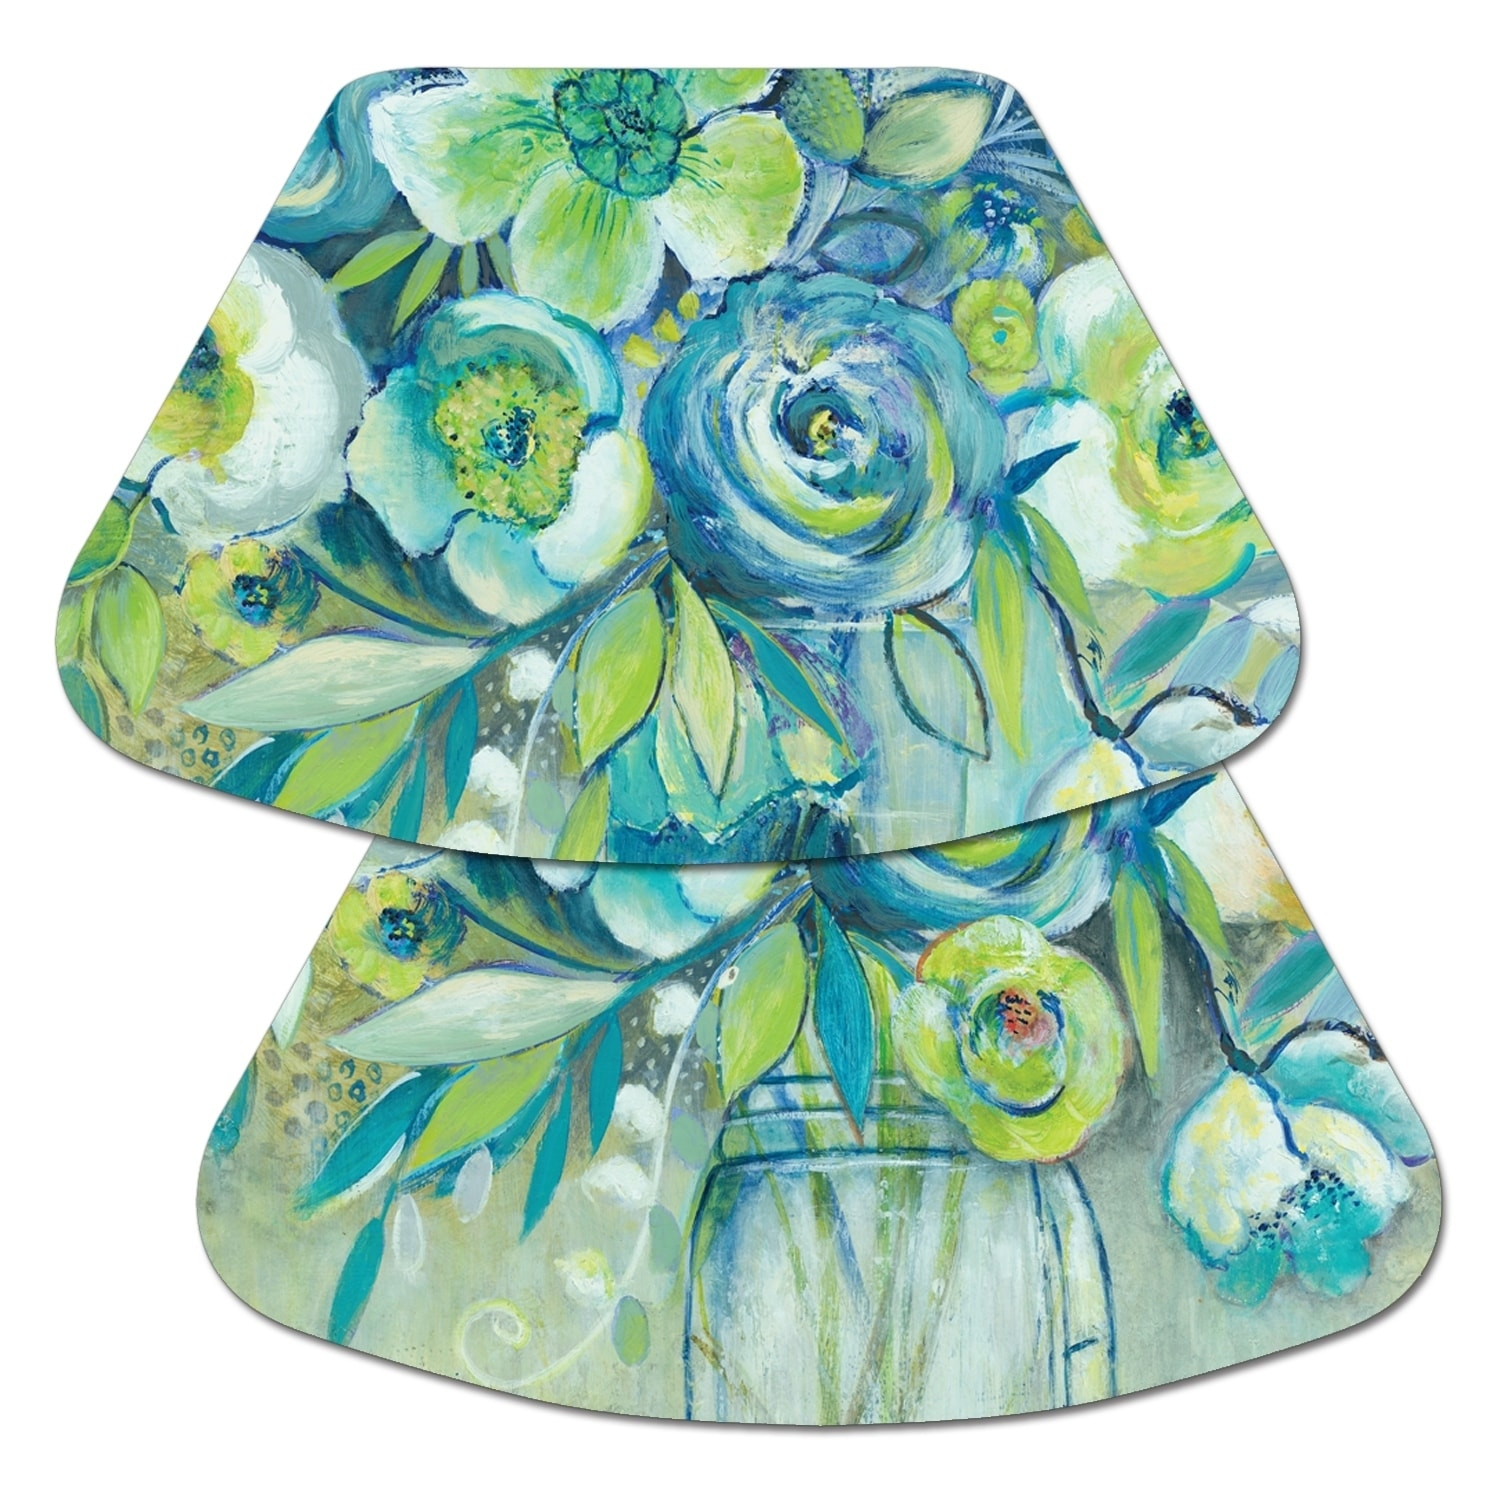 Turquoise Fern Wedge Placemats 4 or 6 Reversible Blue Wedge Placemats Green Wedge Placemats for a round table Turquoise Table Decor